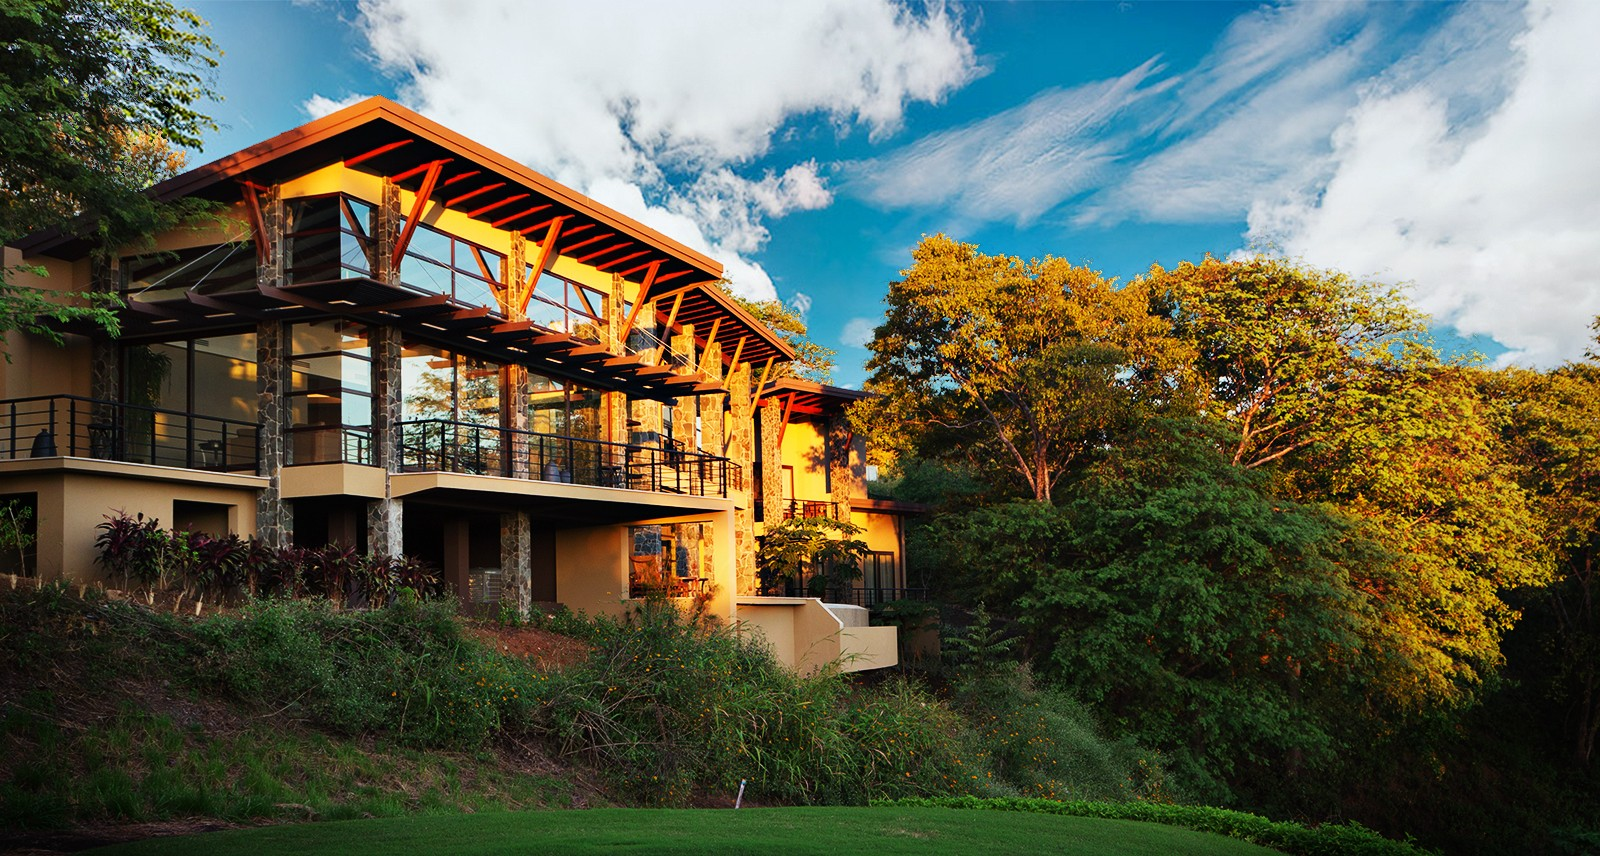 You Could Throw One Hell of a Party at This Costa Rican Vacation Home